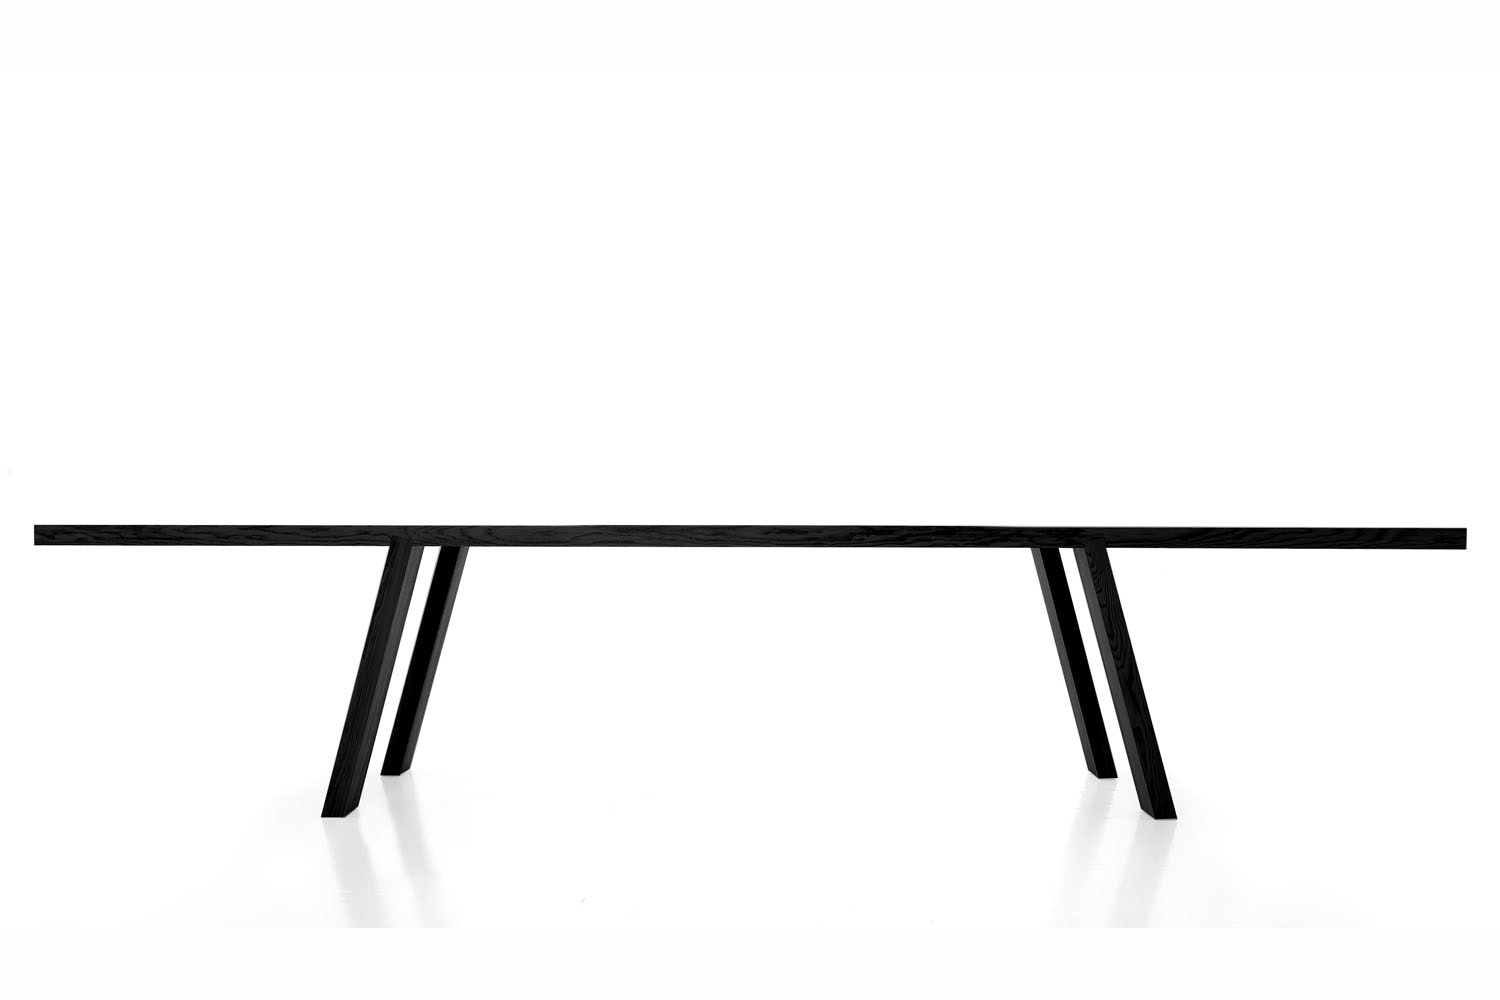 Minimo Medium Table by Piero Lissoni for Porro